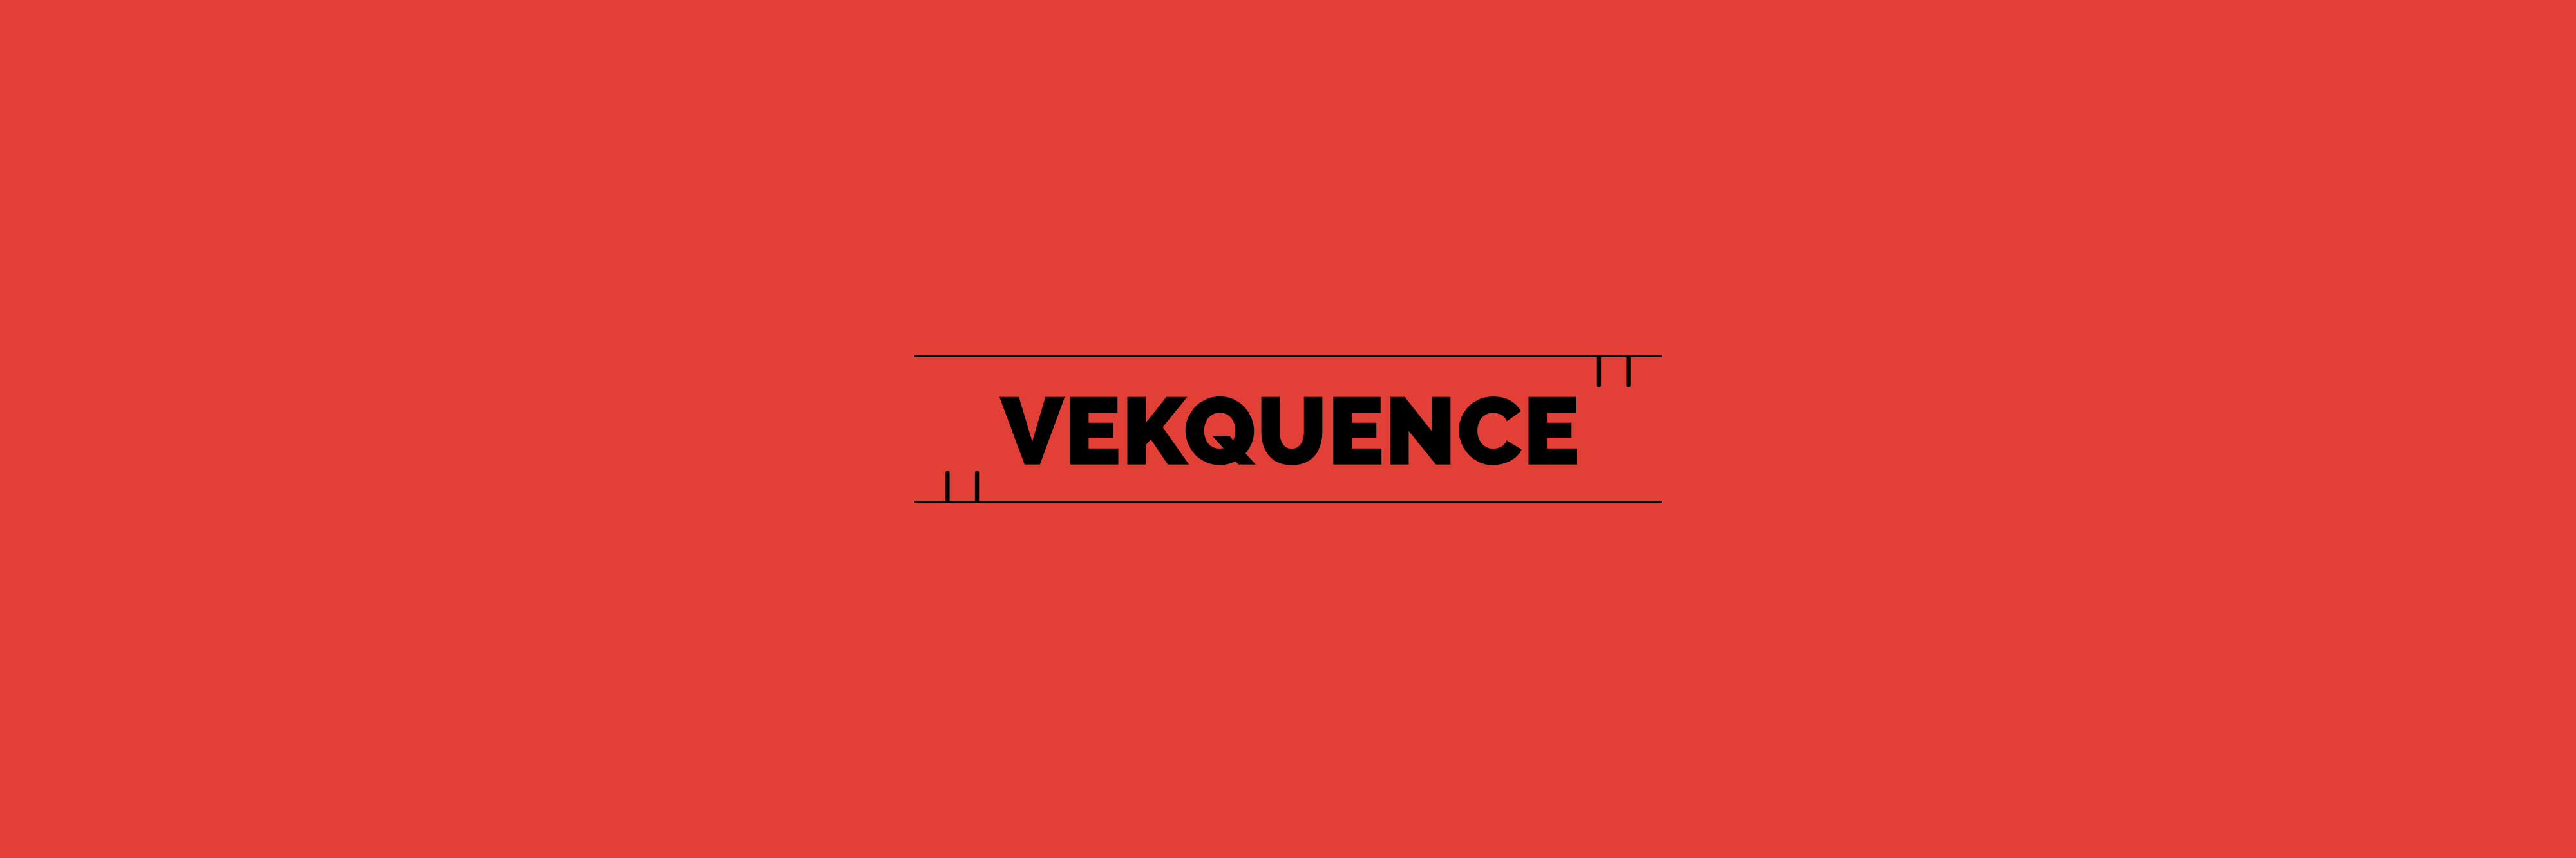 VEKQUENCE